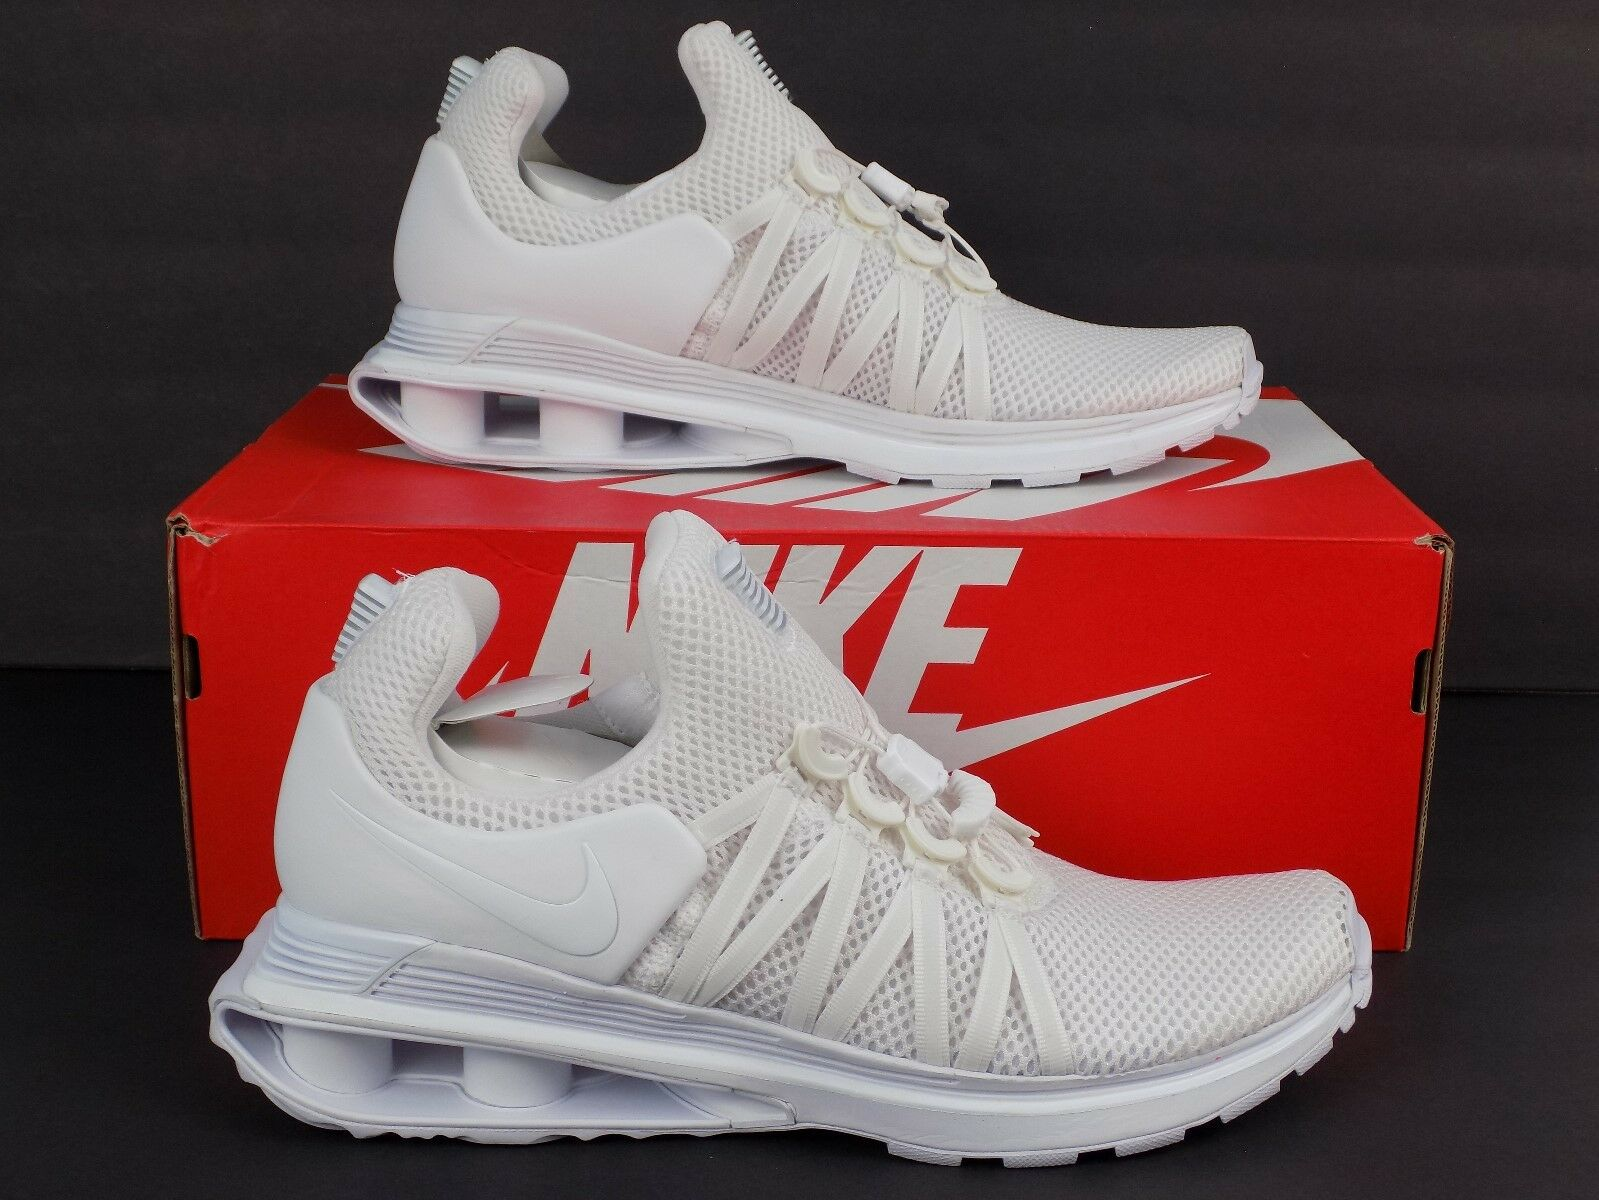 Nike Shox Gravity Mens Running Shoes White White White AR1999 100 Comfortable New shoes for men and women, limited time discount